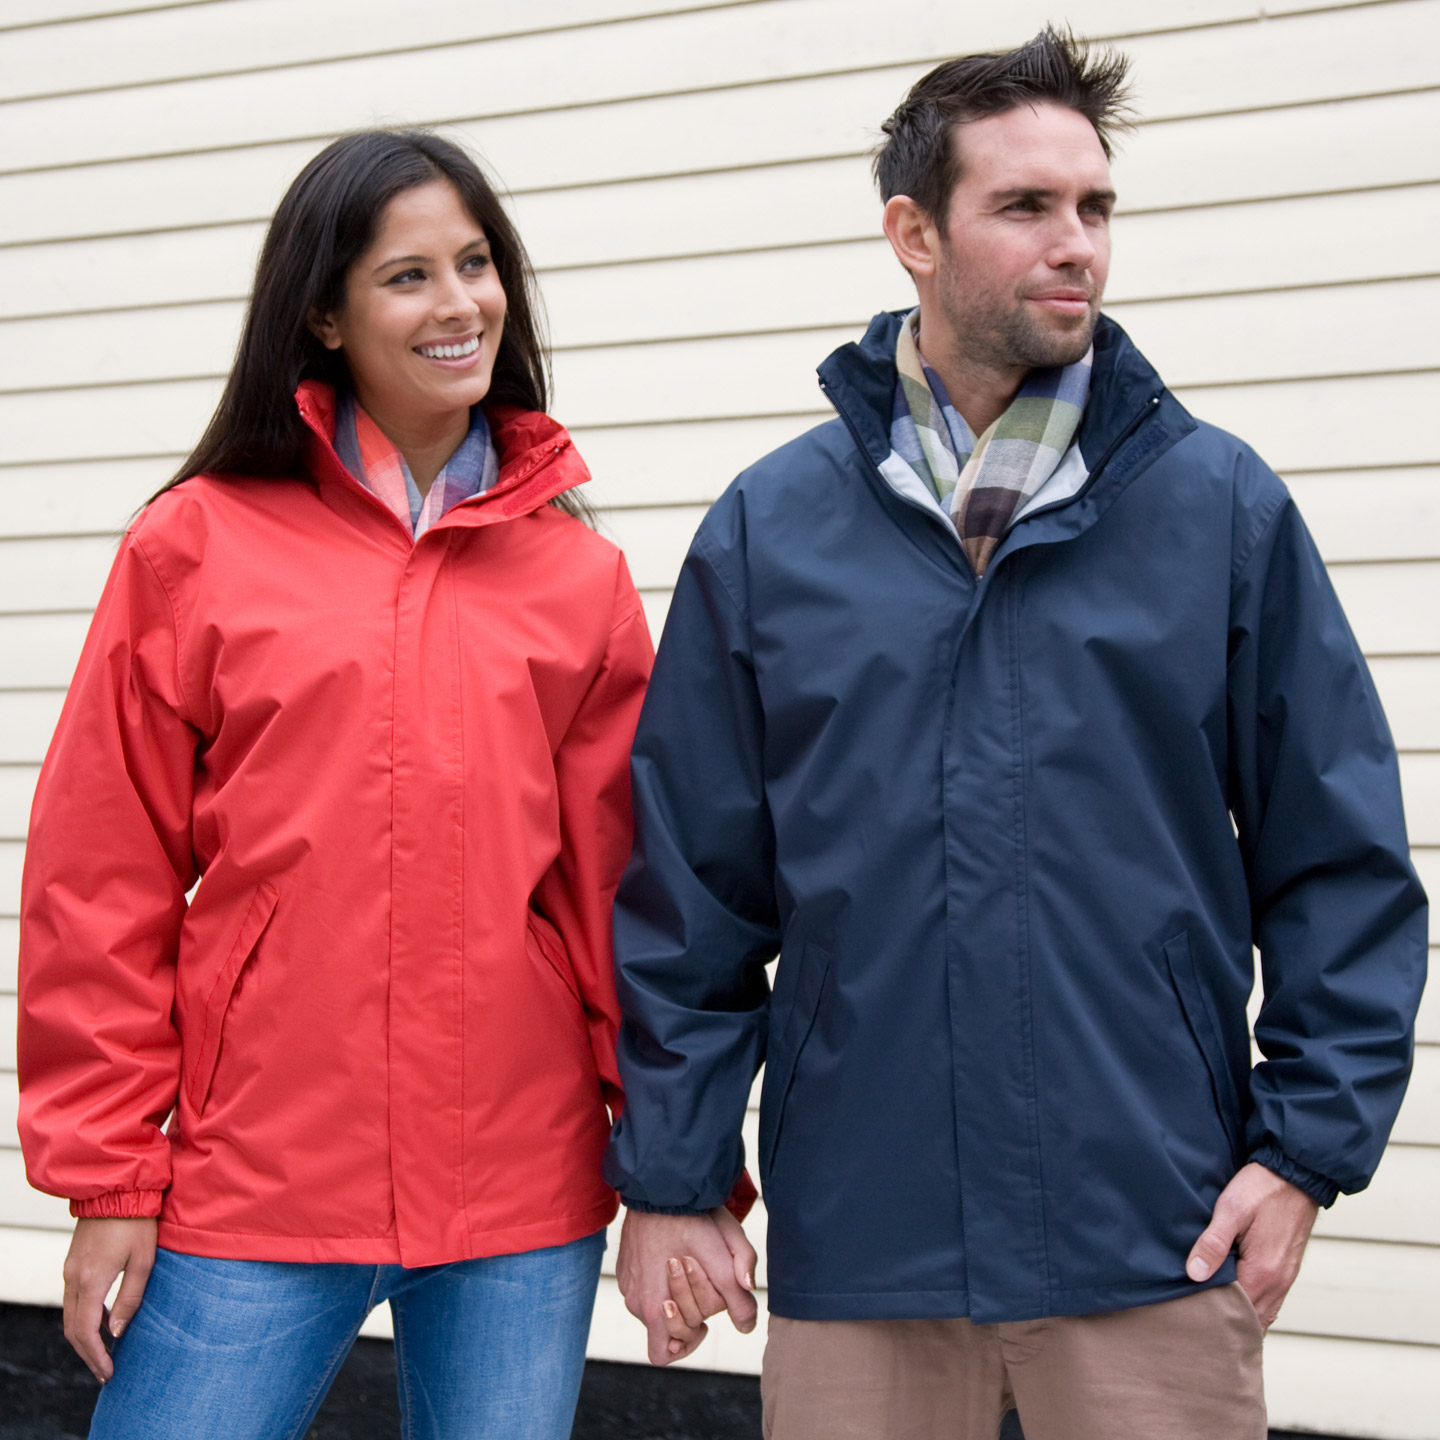 Branded Midweight Jacket